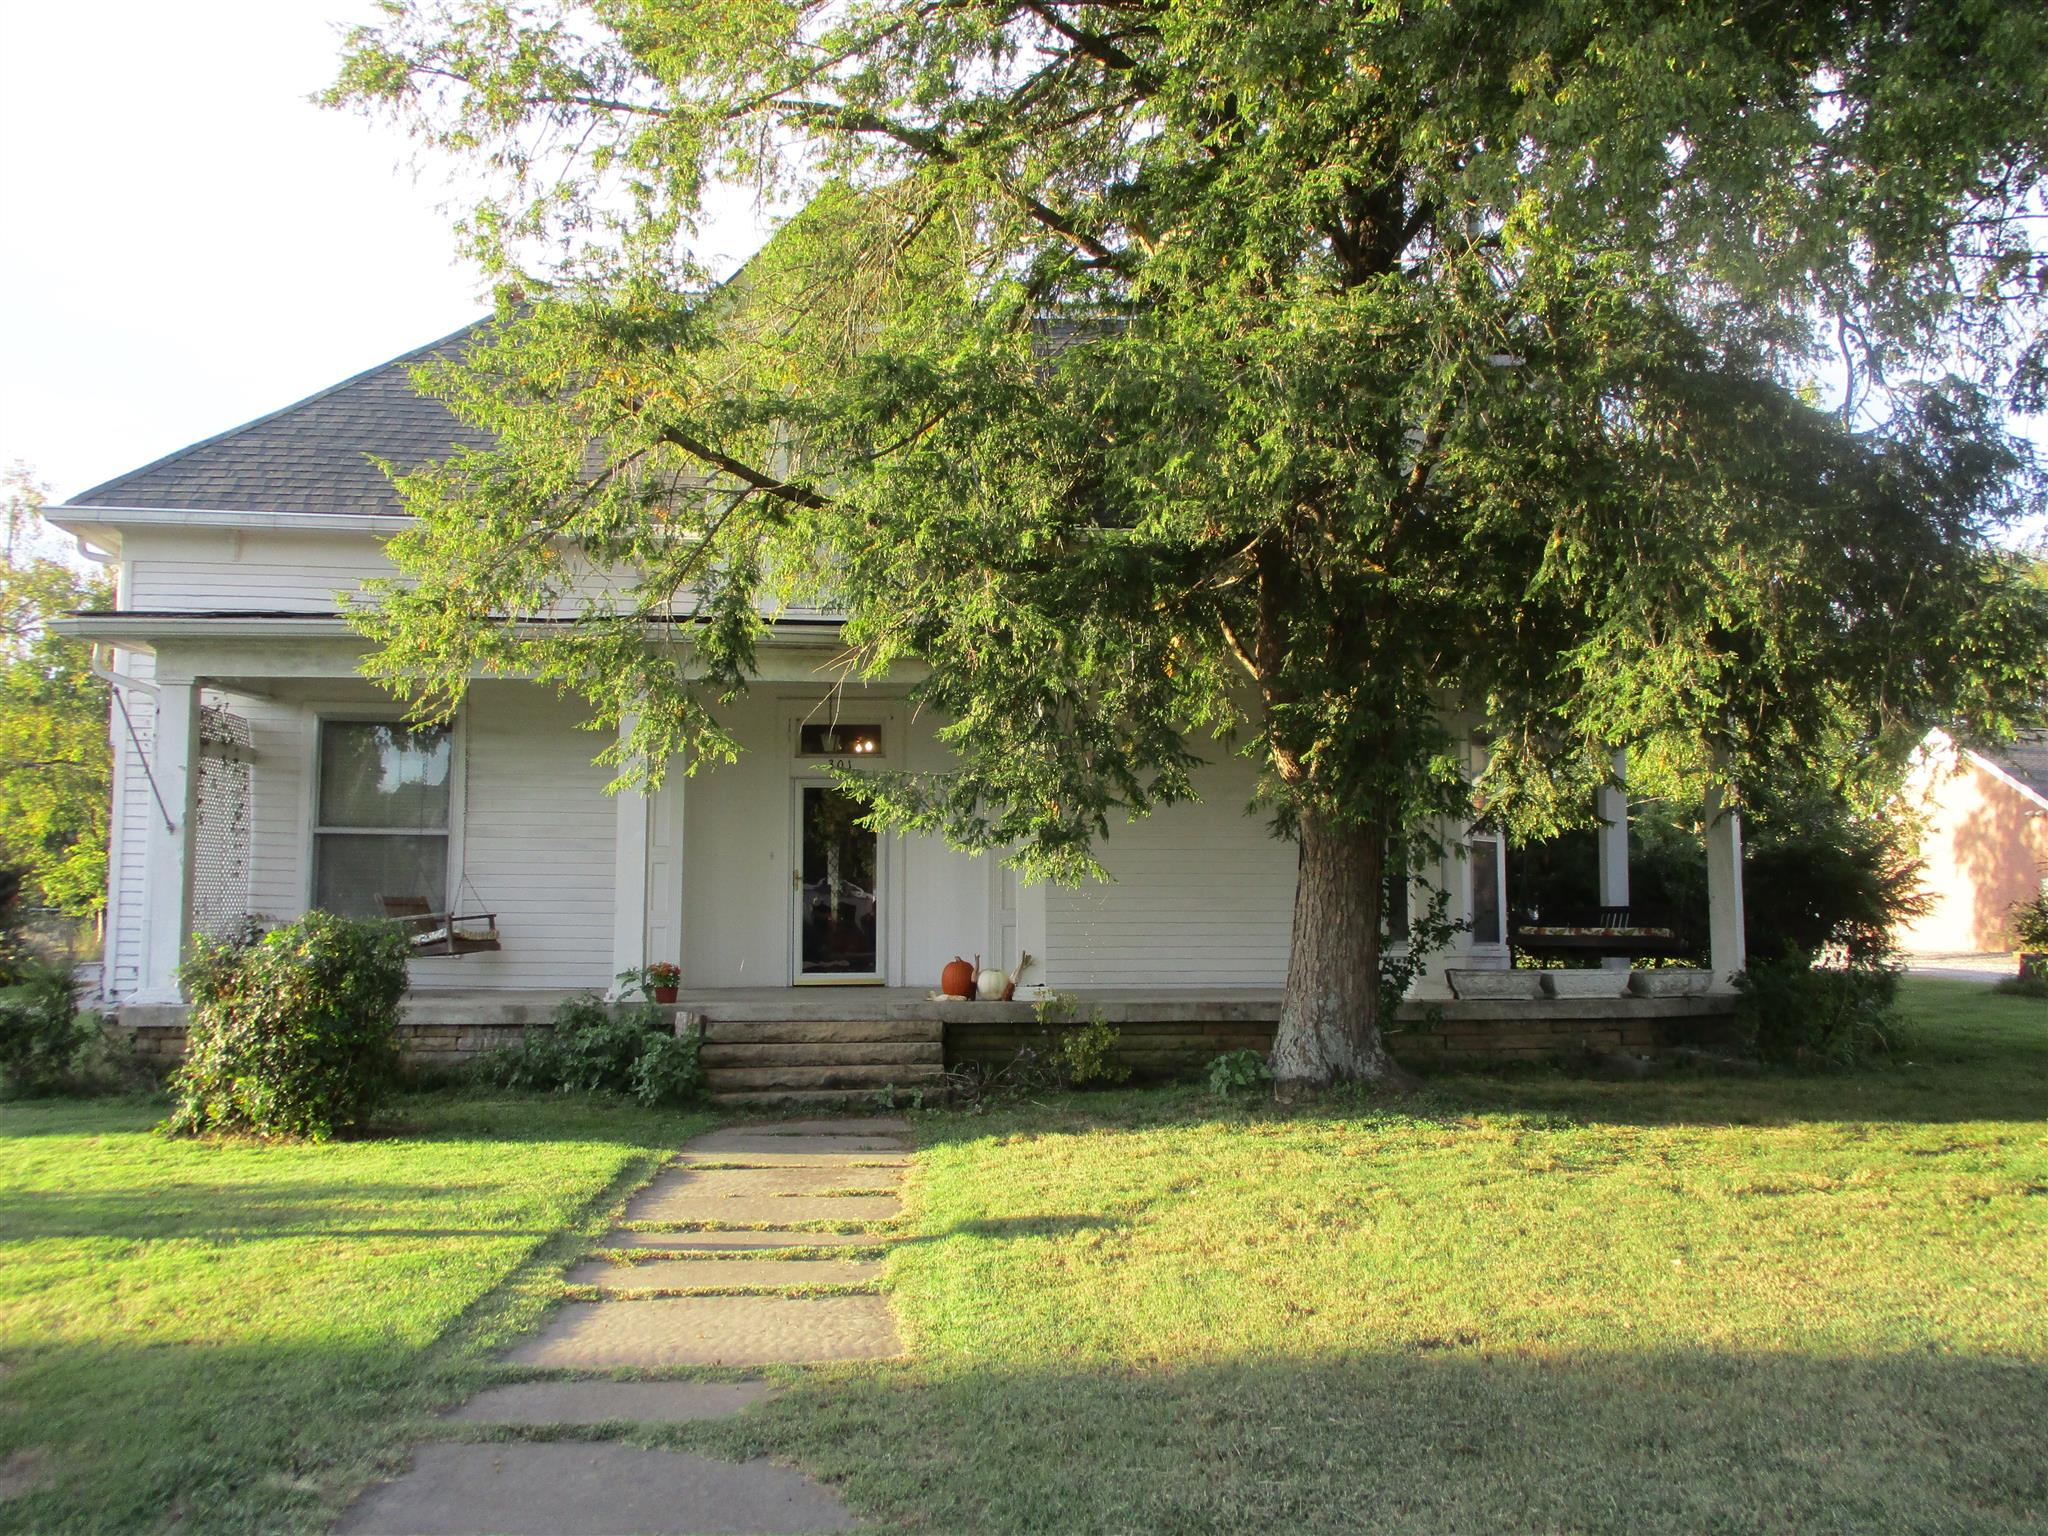 301 W Main St, Watertown, TN 37184 - Watertown, TN real estate listing